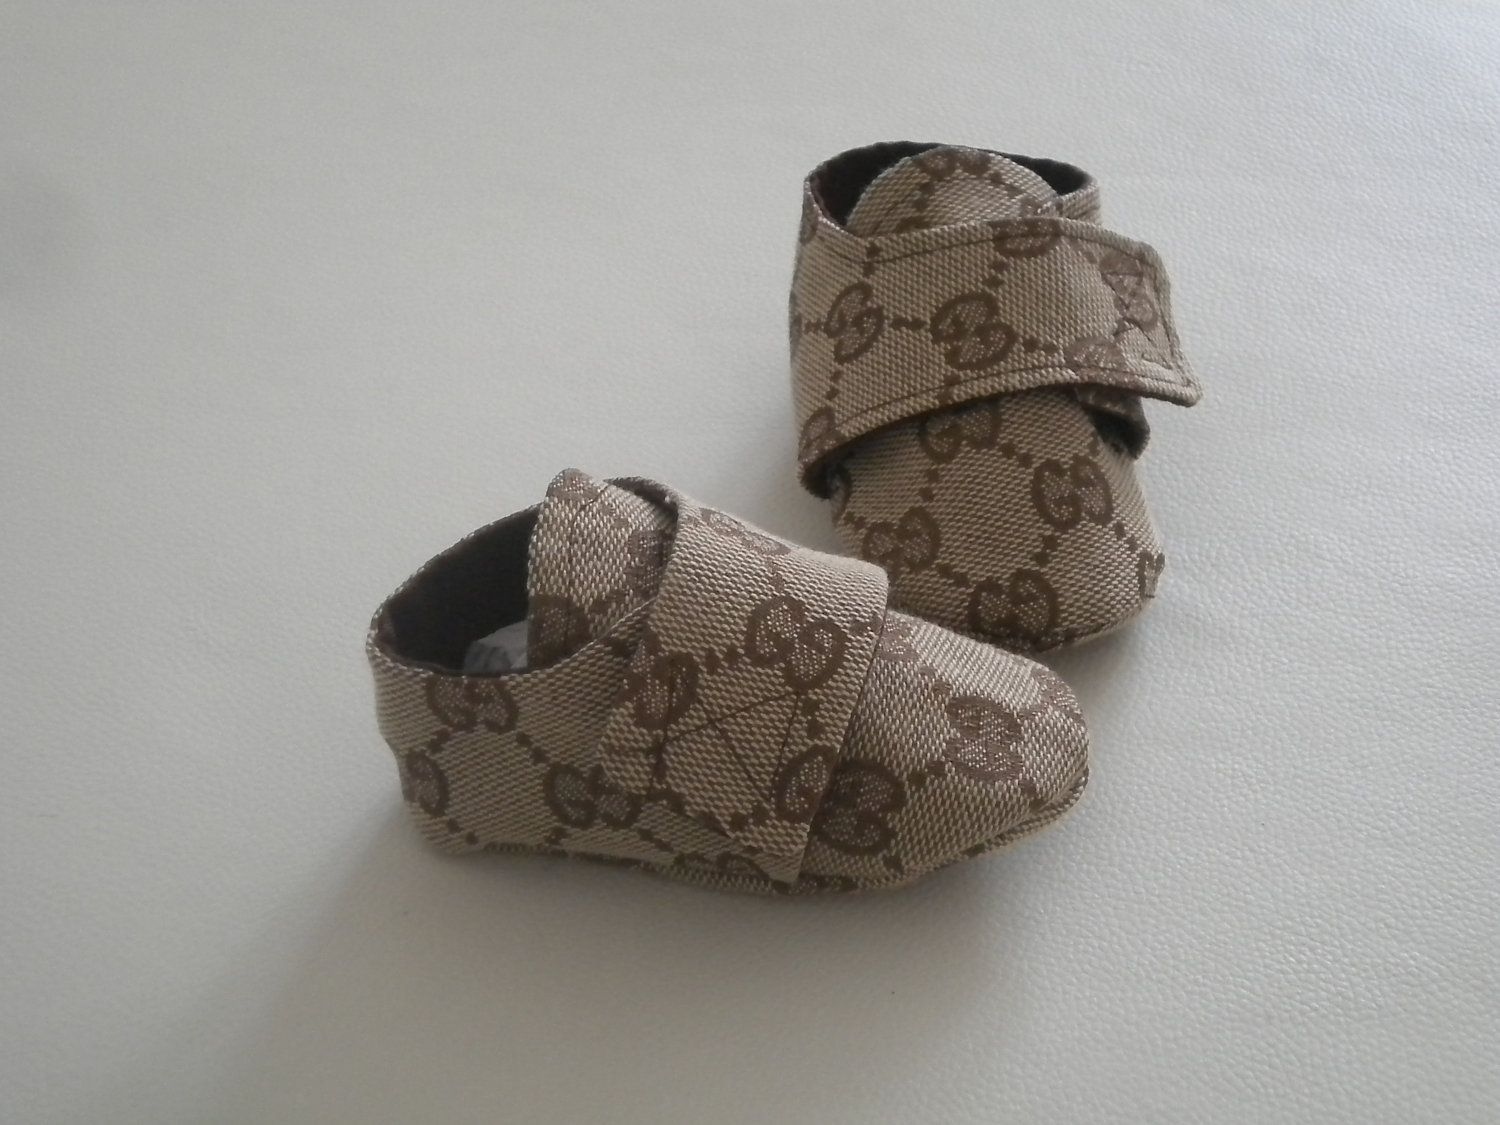 de2cb5471 Baby Boys Gucci Inspired Shoes. Too cute!! | Little Ones | Baby boy ...